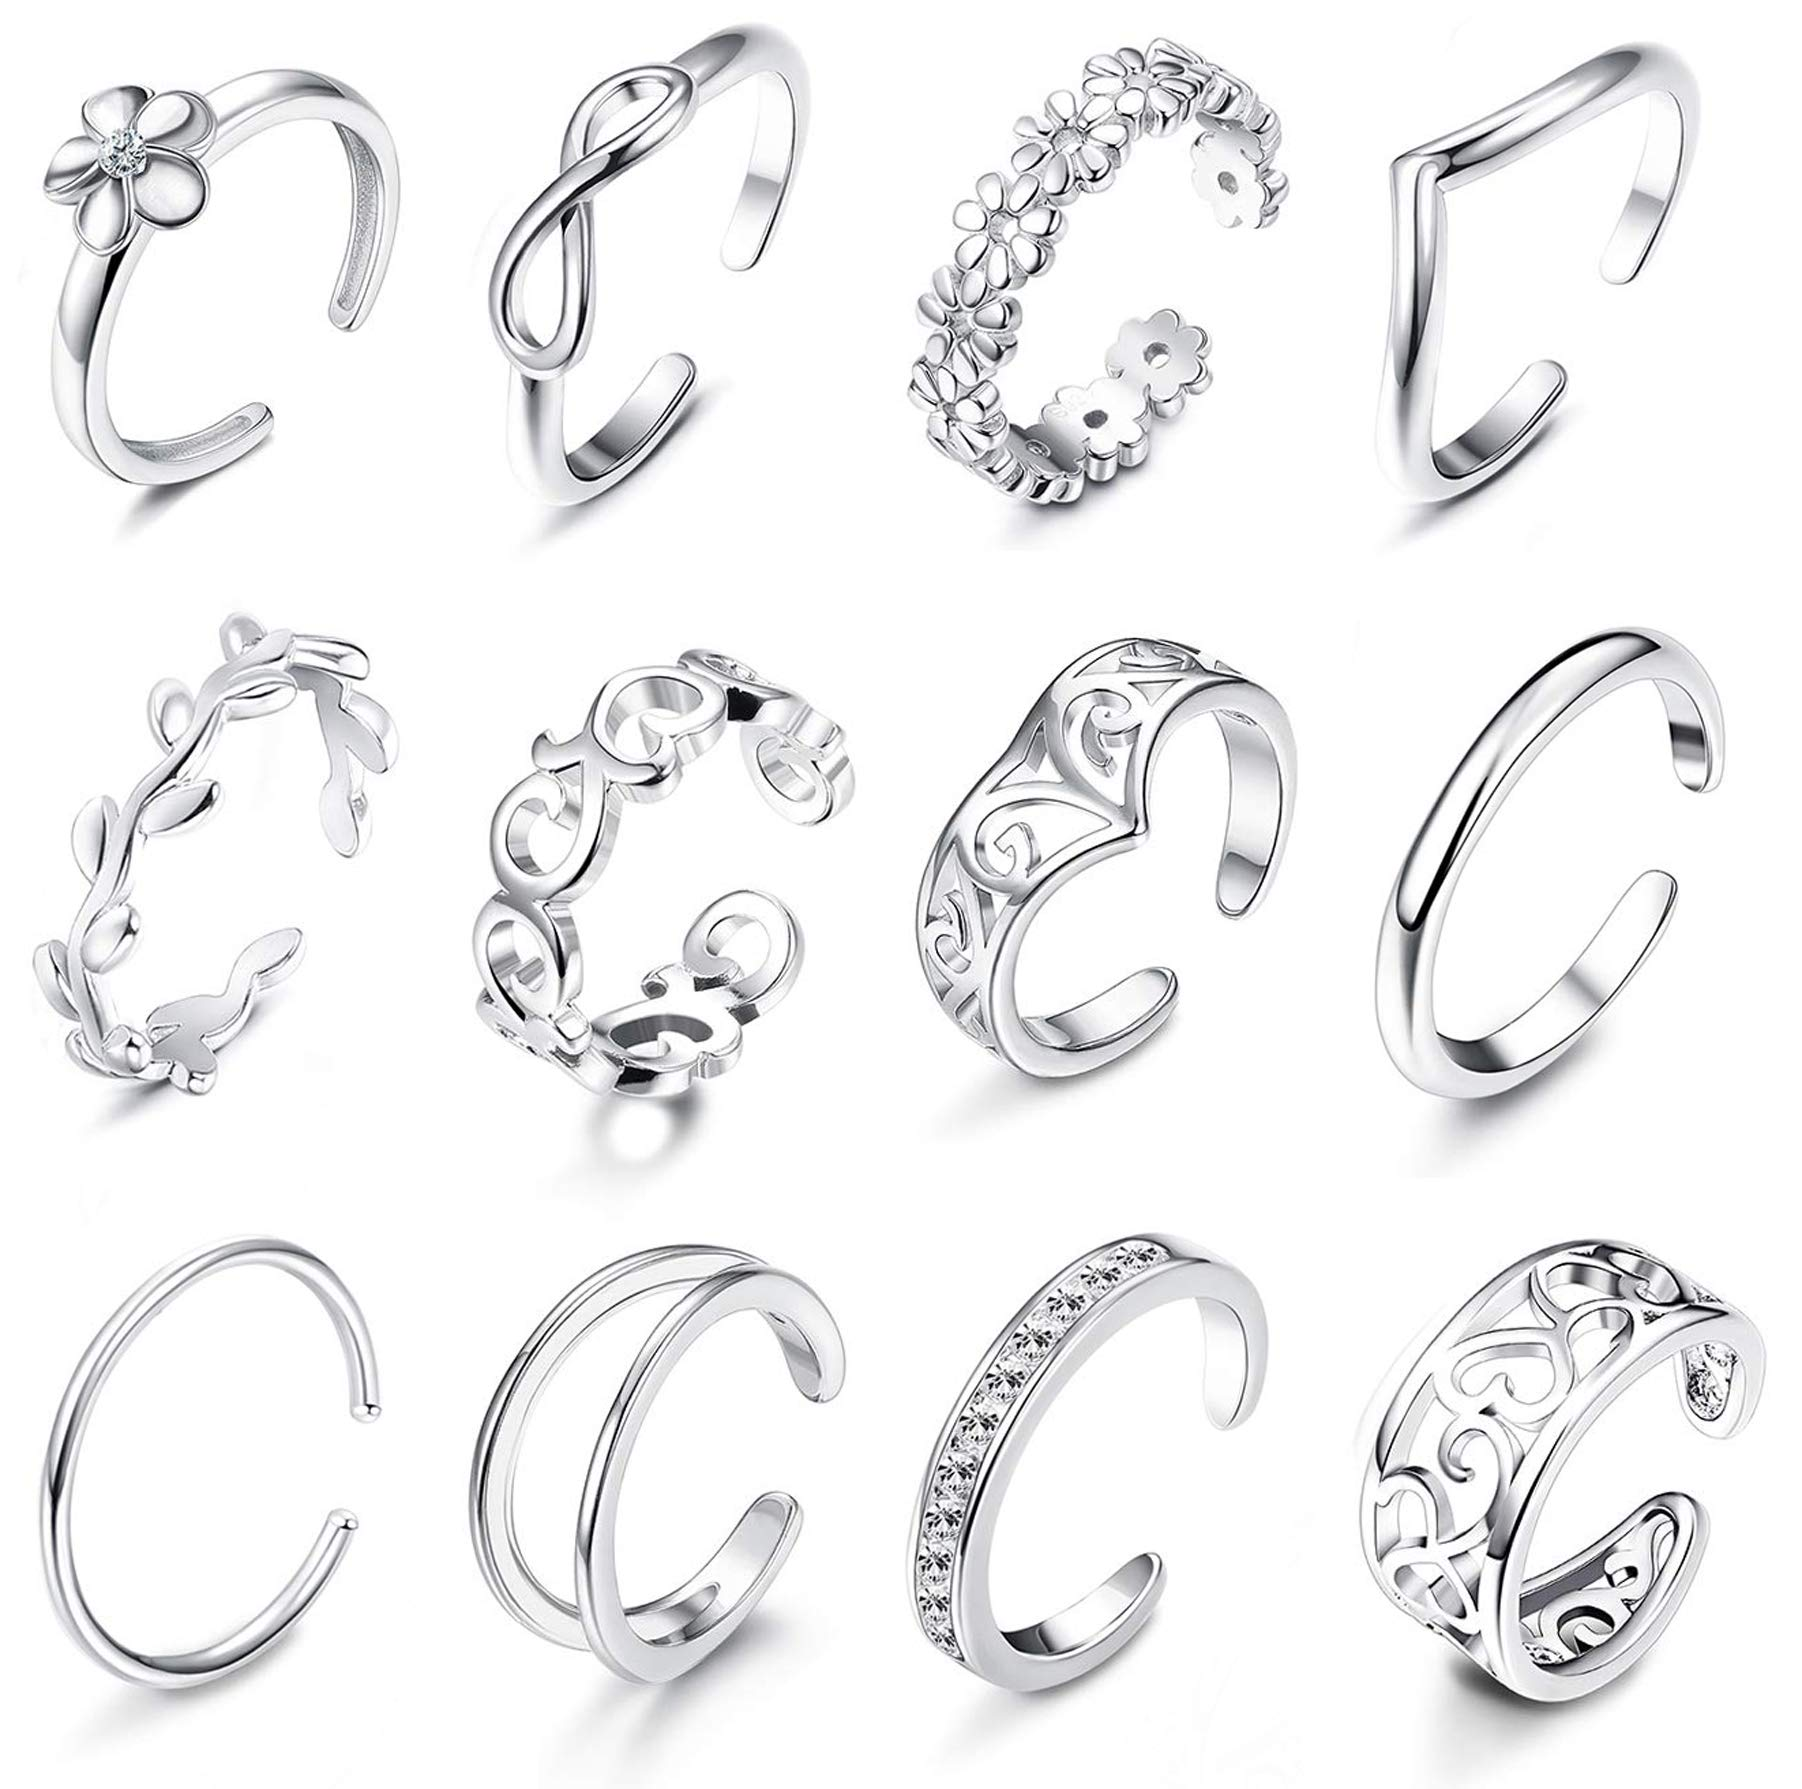 Subiceto 12 Pcs Adjustable Toe Rings for Women Girls Retro Various Types Flower Band Open Toe Ring Set Women Gift Jewelry Silver-Tone by Subiceto